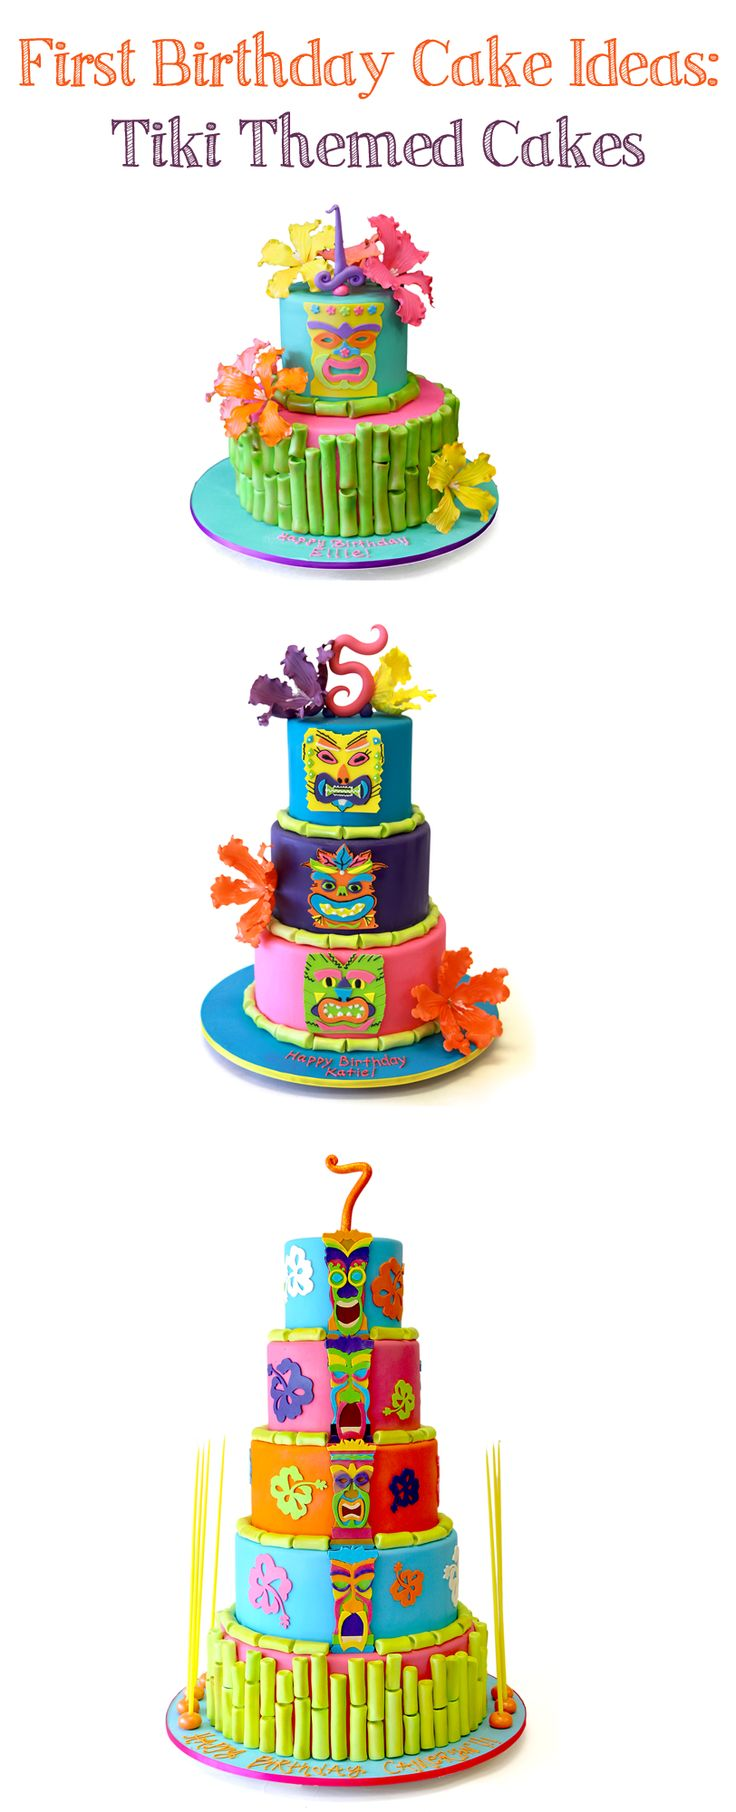 Planning a Luau or Tiki themed party? Check out these cakes and more related 1st birthday cakes on our site!